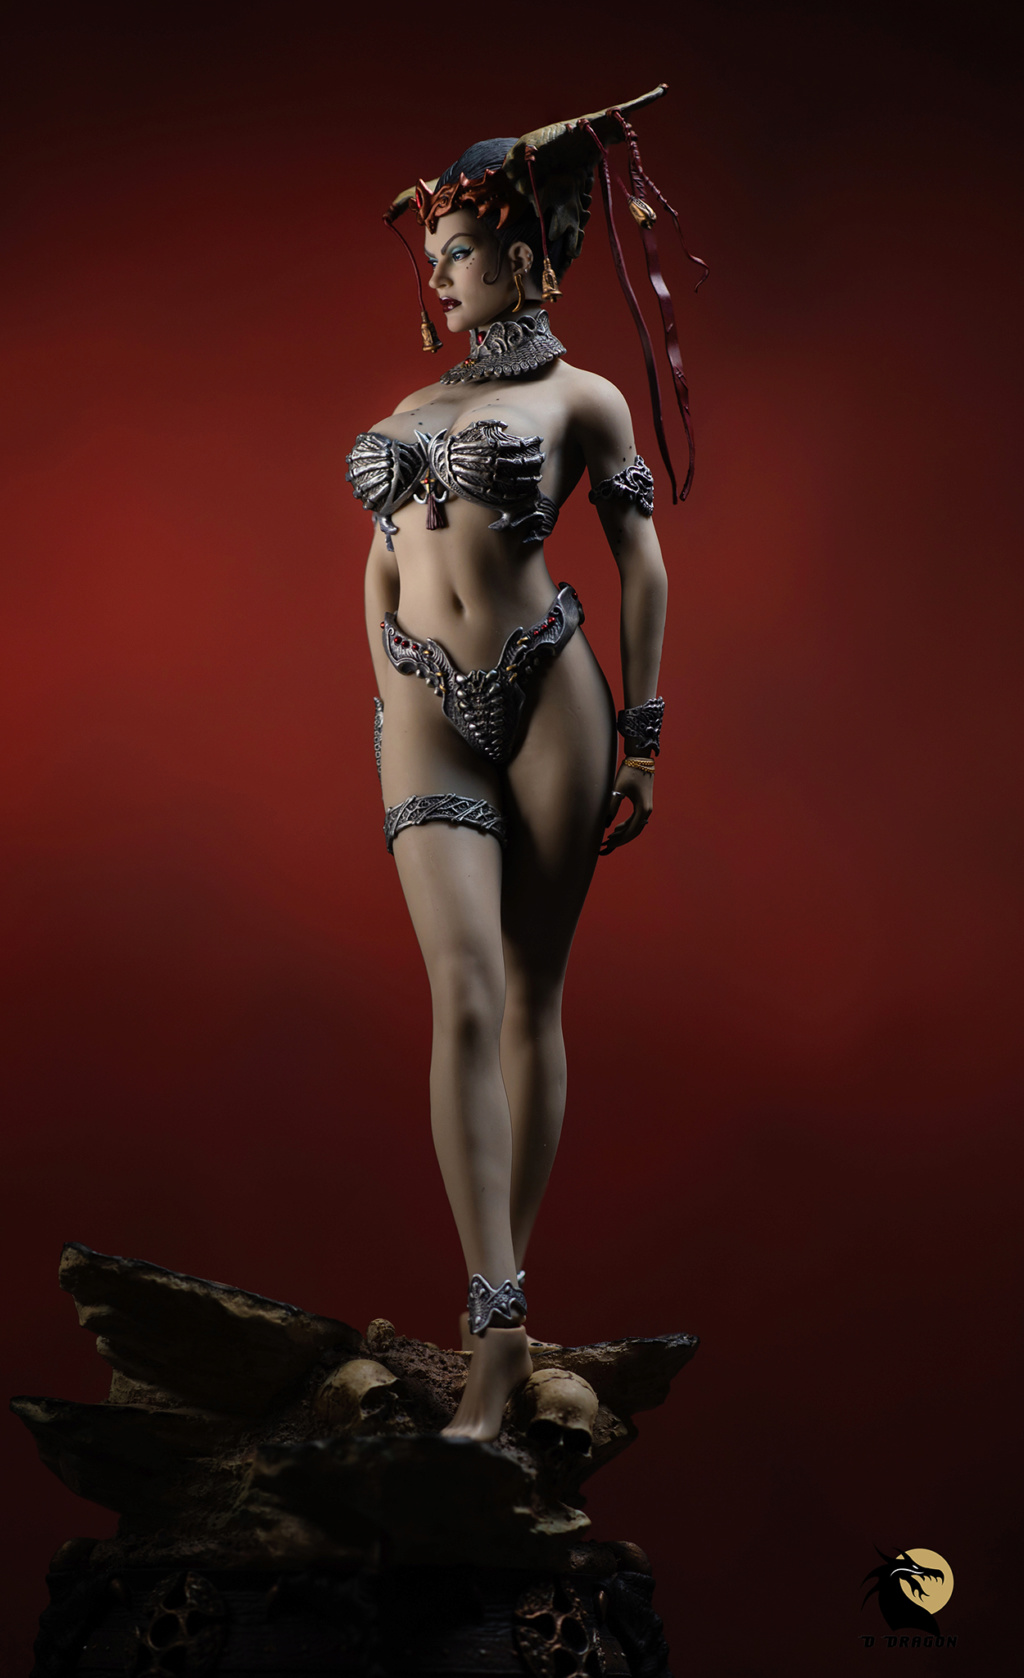 tbleague - NEW PRODUCT: Tbleague x SIDESHOW New: 1/6 Court of the Dead: Gethsemoni The Dead Queen action figure (PL2019-147) - Page 2 Gethse23